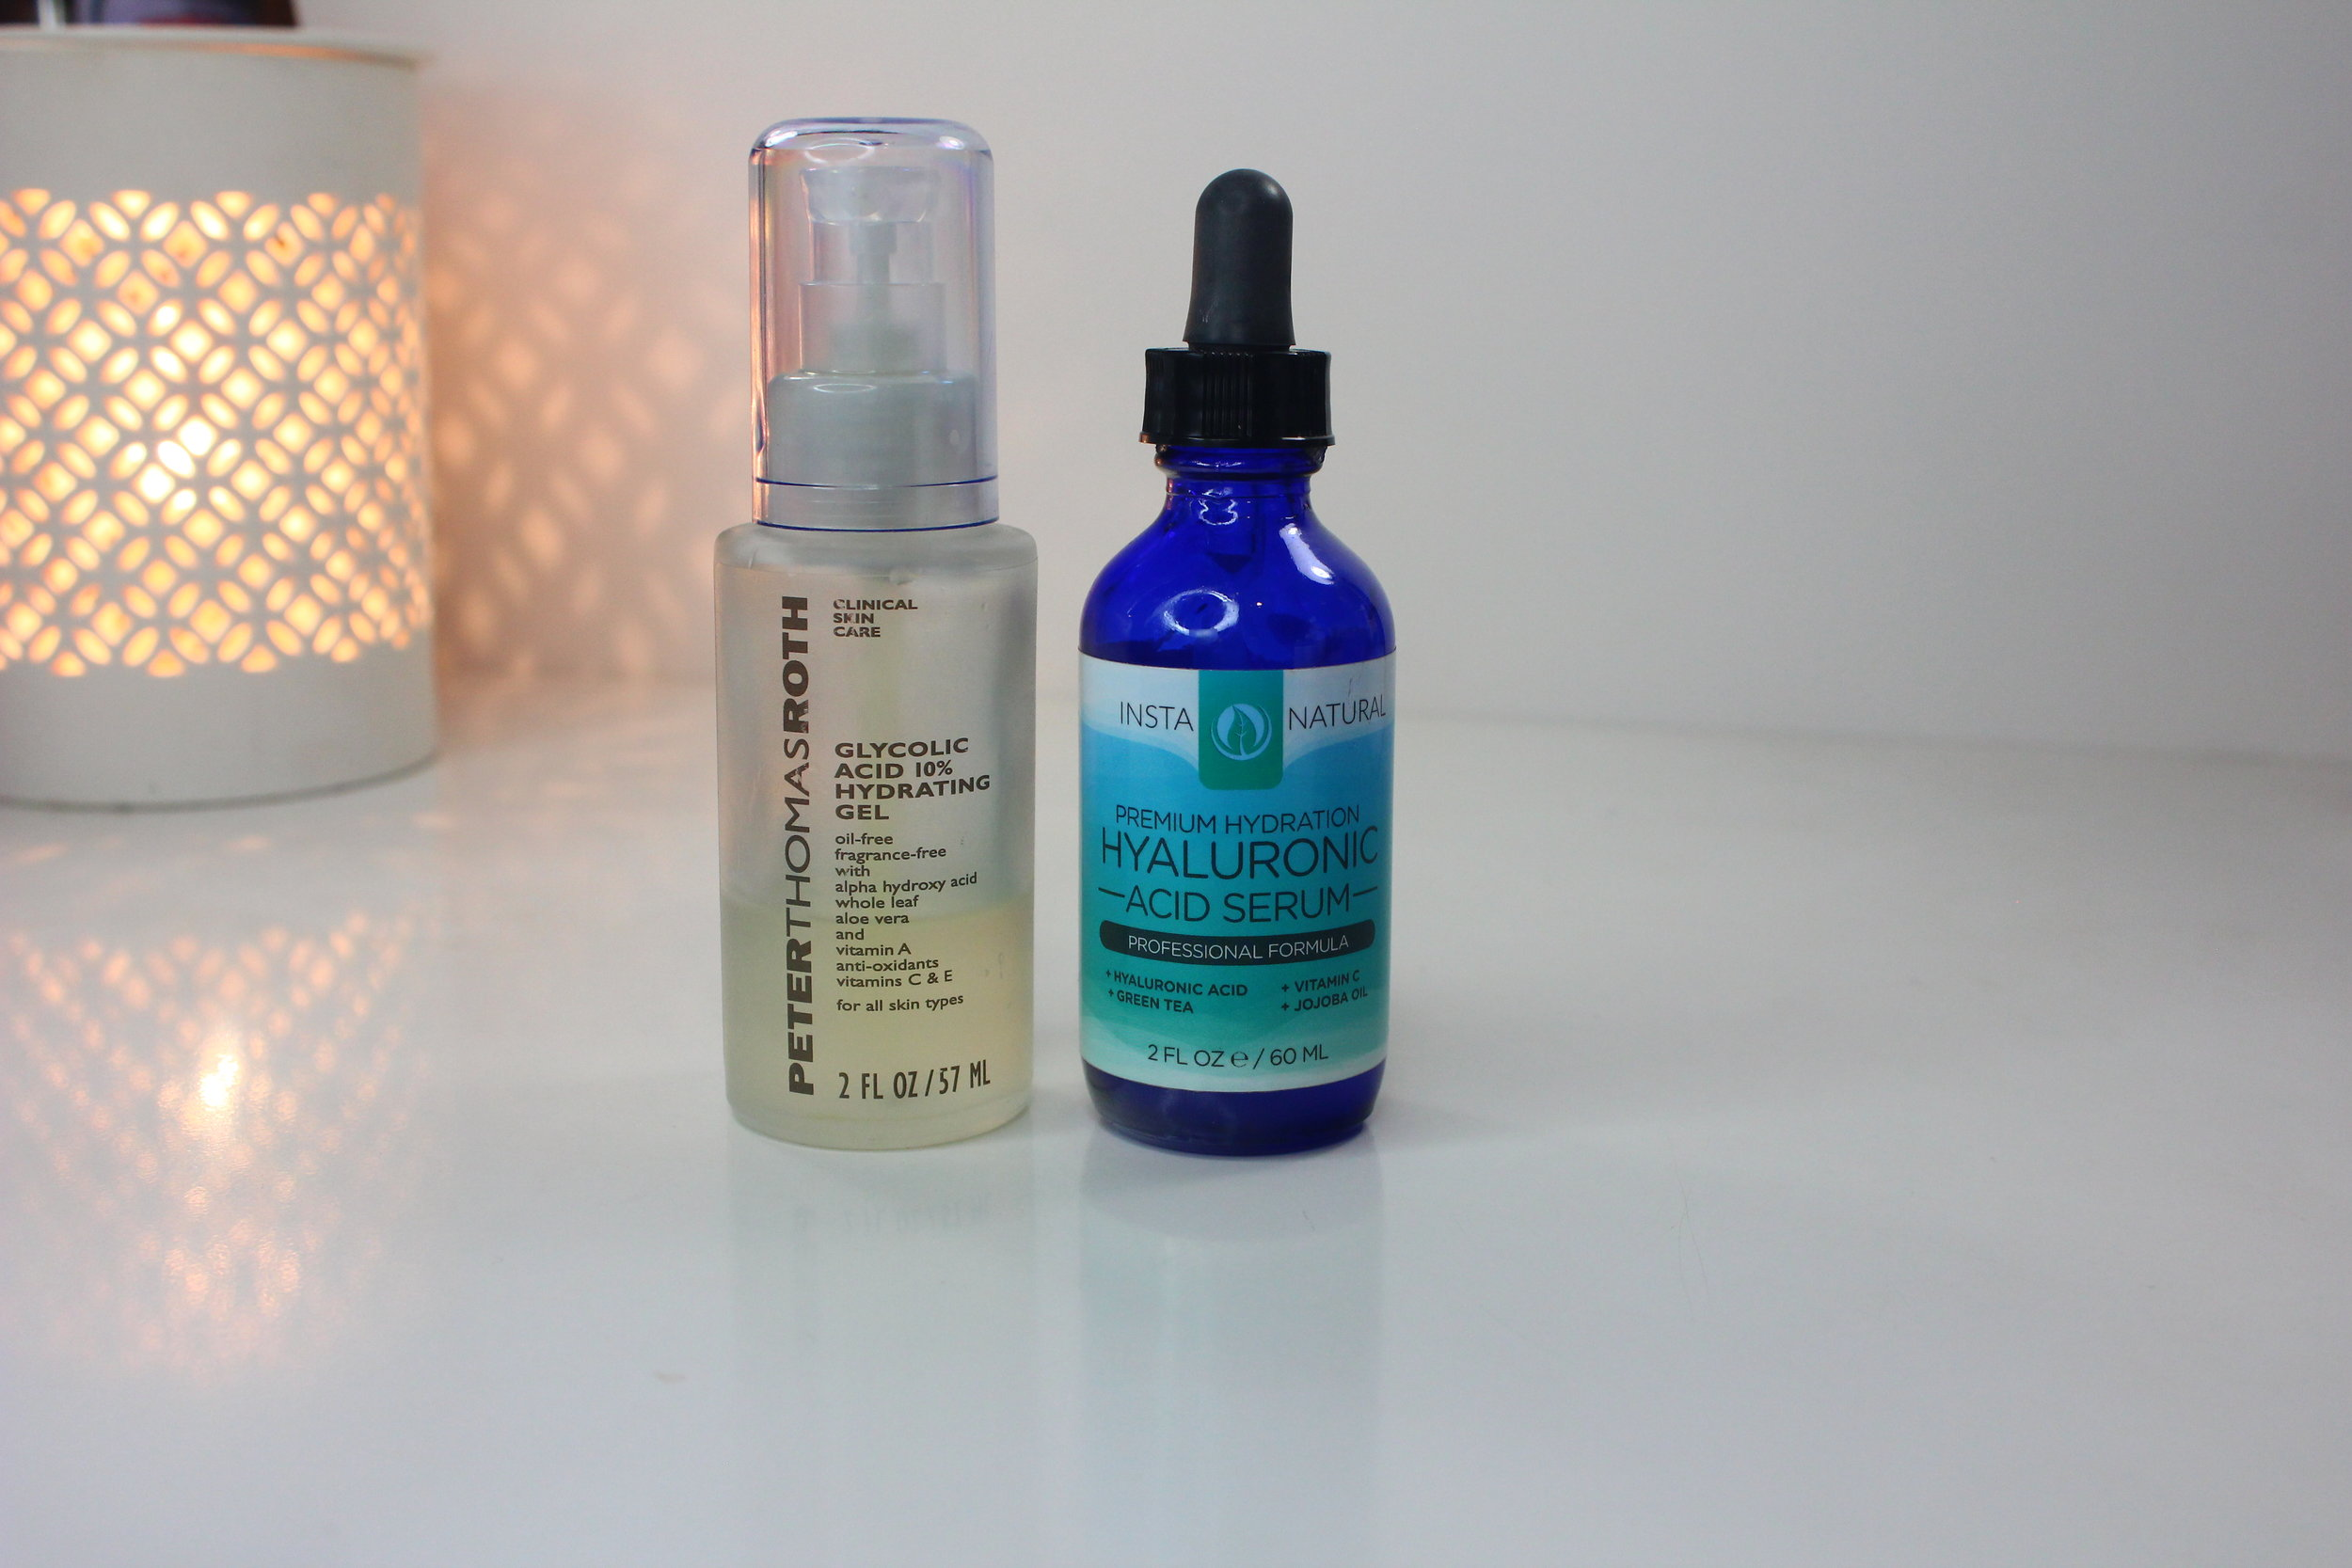 Peter thomas roth glycolic acid gel and insta naturals hylauronic acid serum